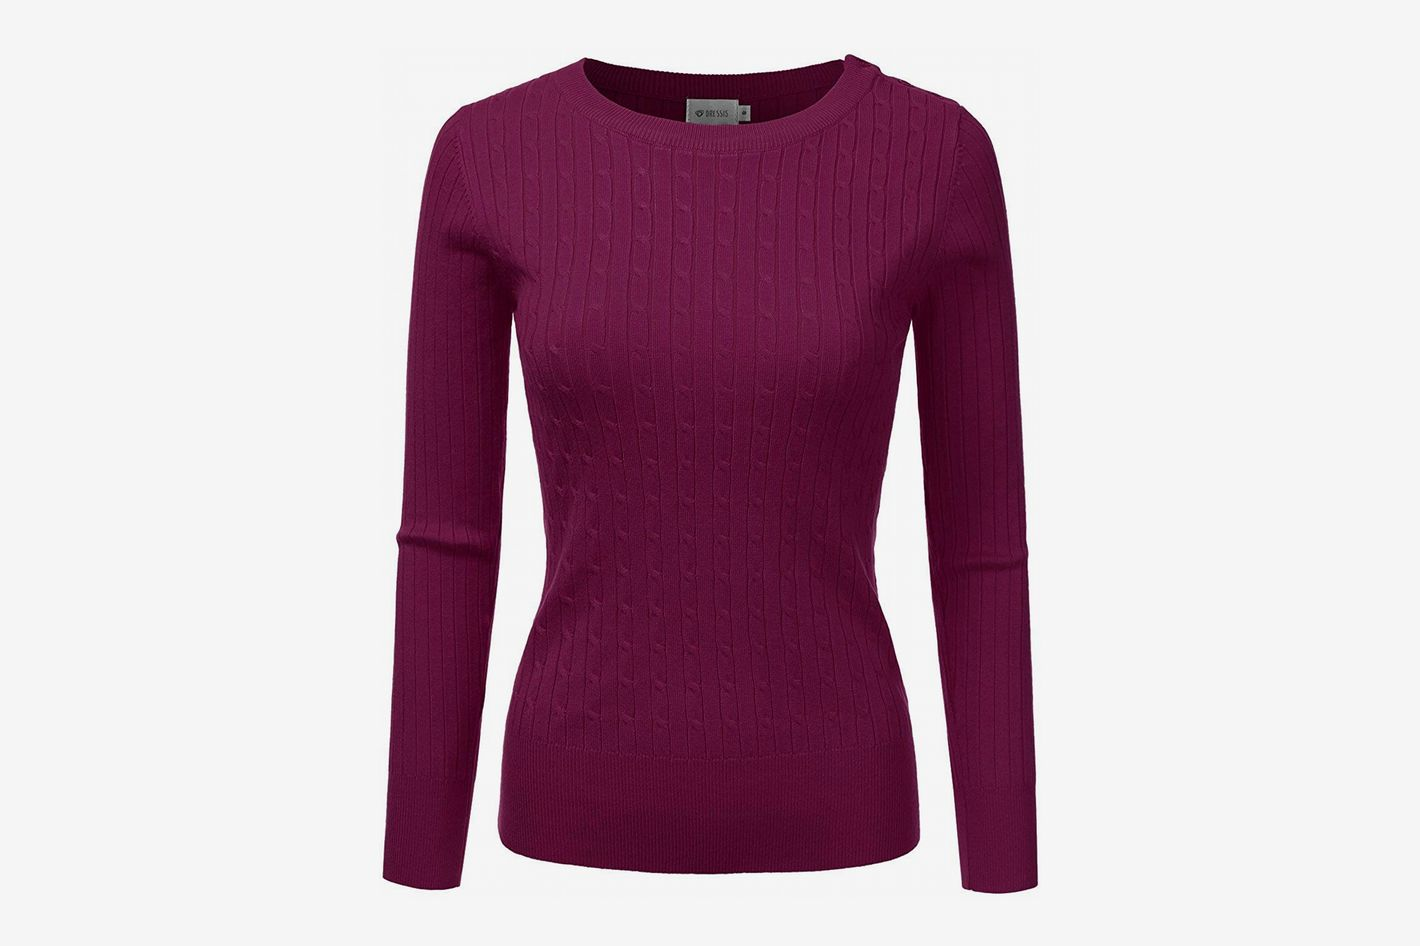 a8b50fcee30 DRESSIS Women s Long Sleeve Round Neck Cable Knit Sweater. ""